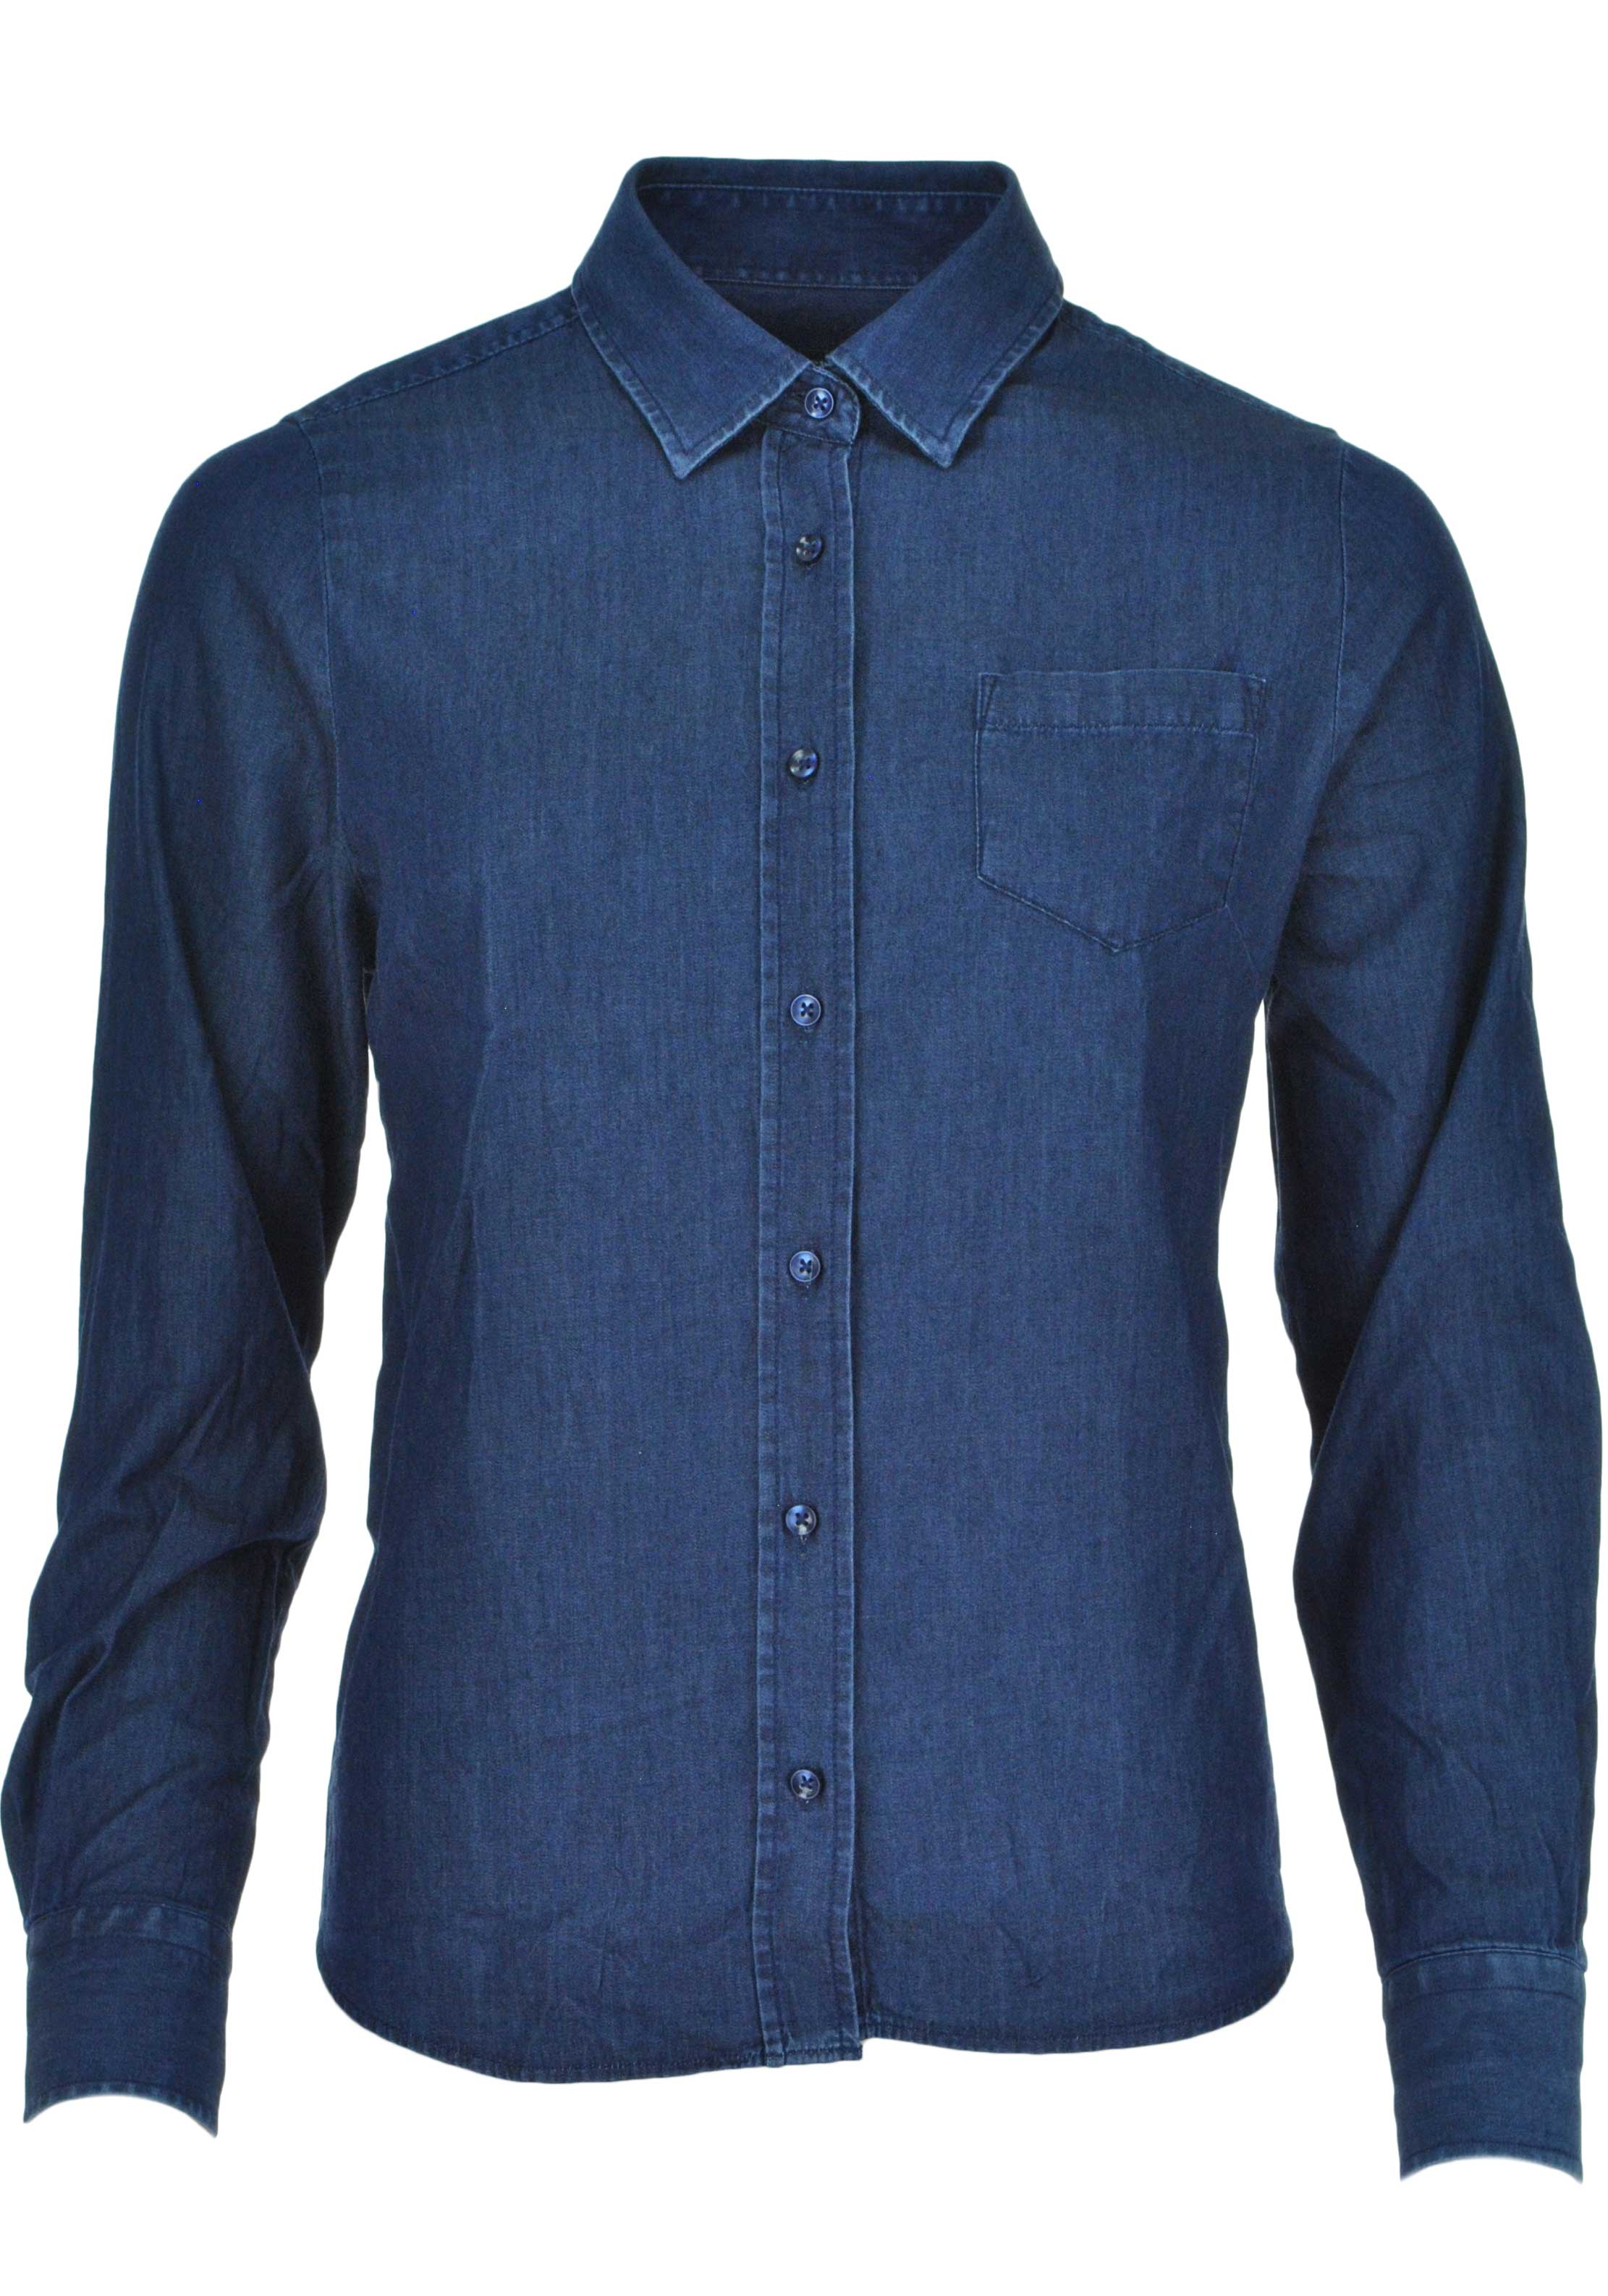 Collection by First Avenue Denim Shirt, Dark Denim